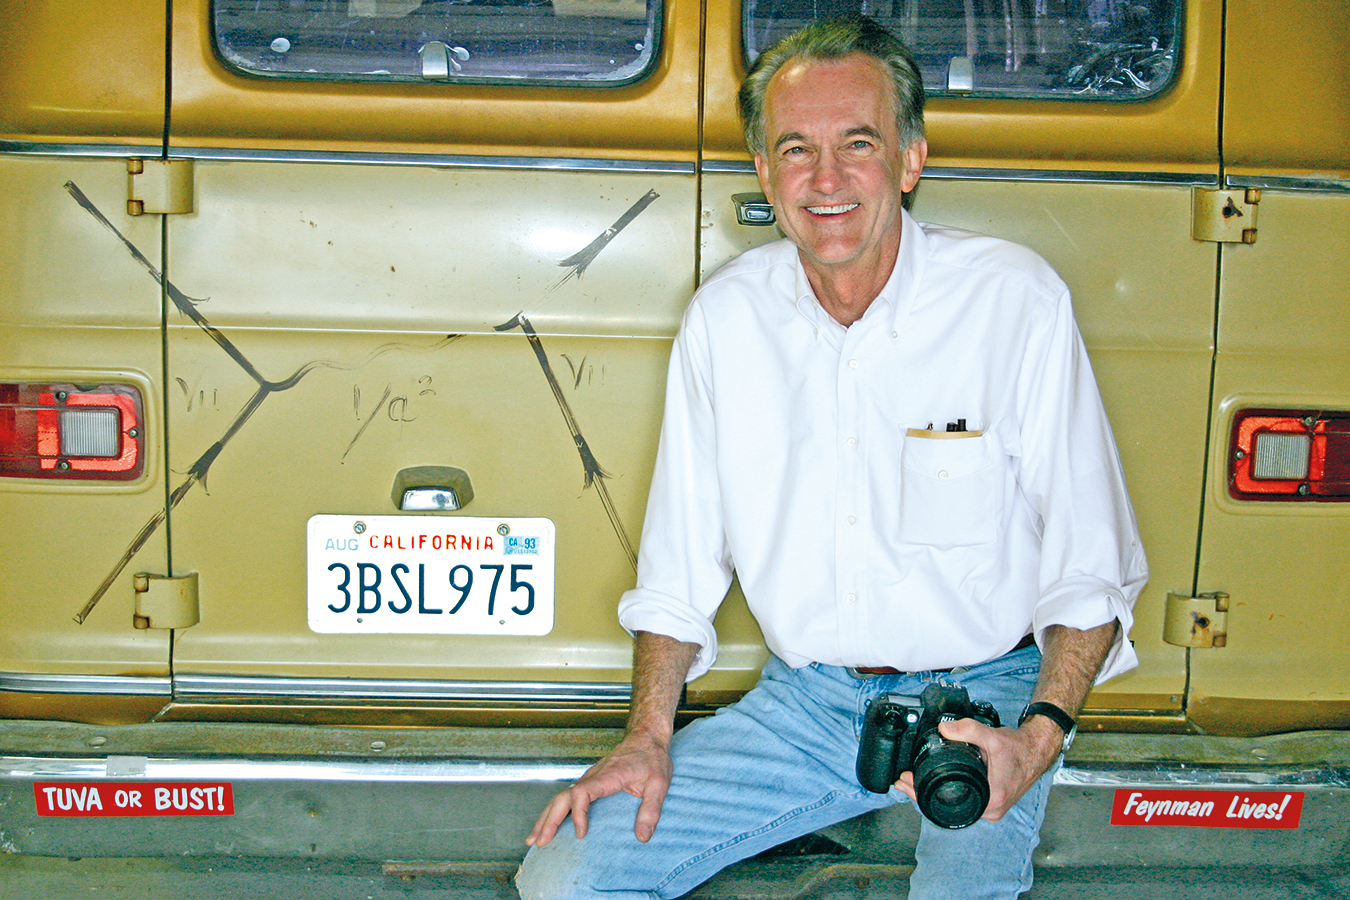 Edward Tufte with Richard Feynman's van, which sports one of the physicist's eponymous diagrams.